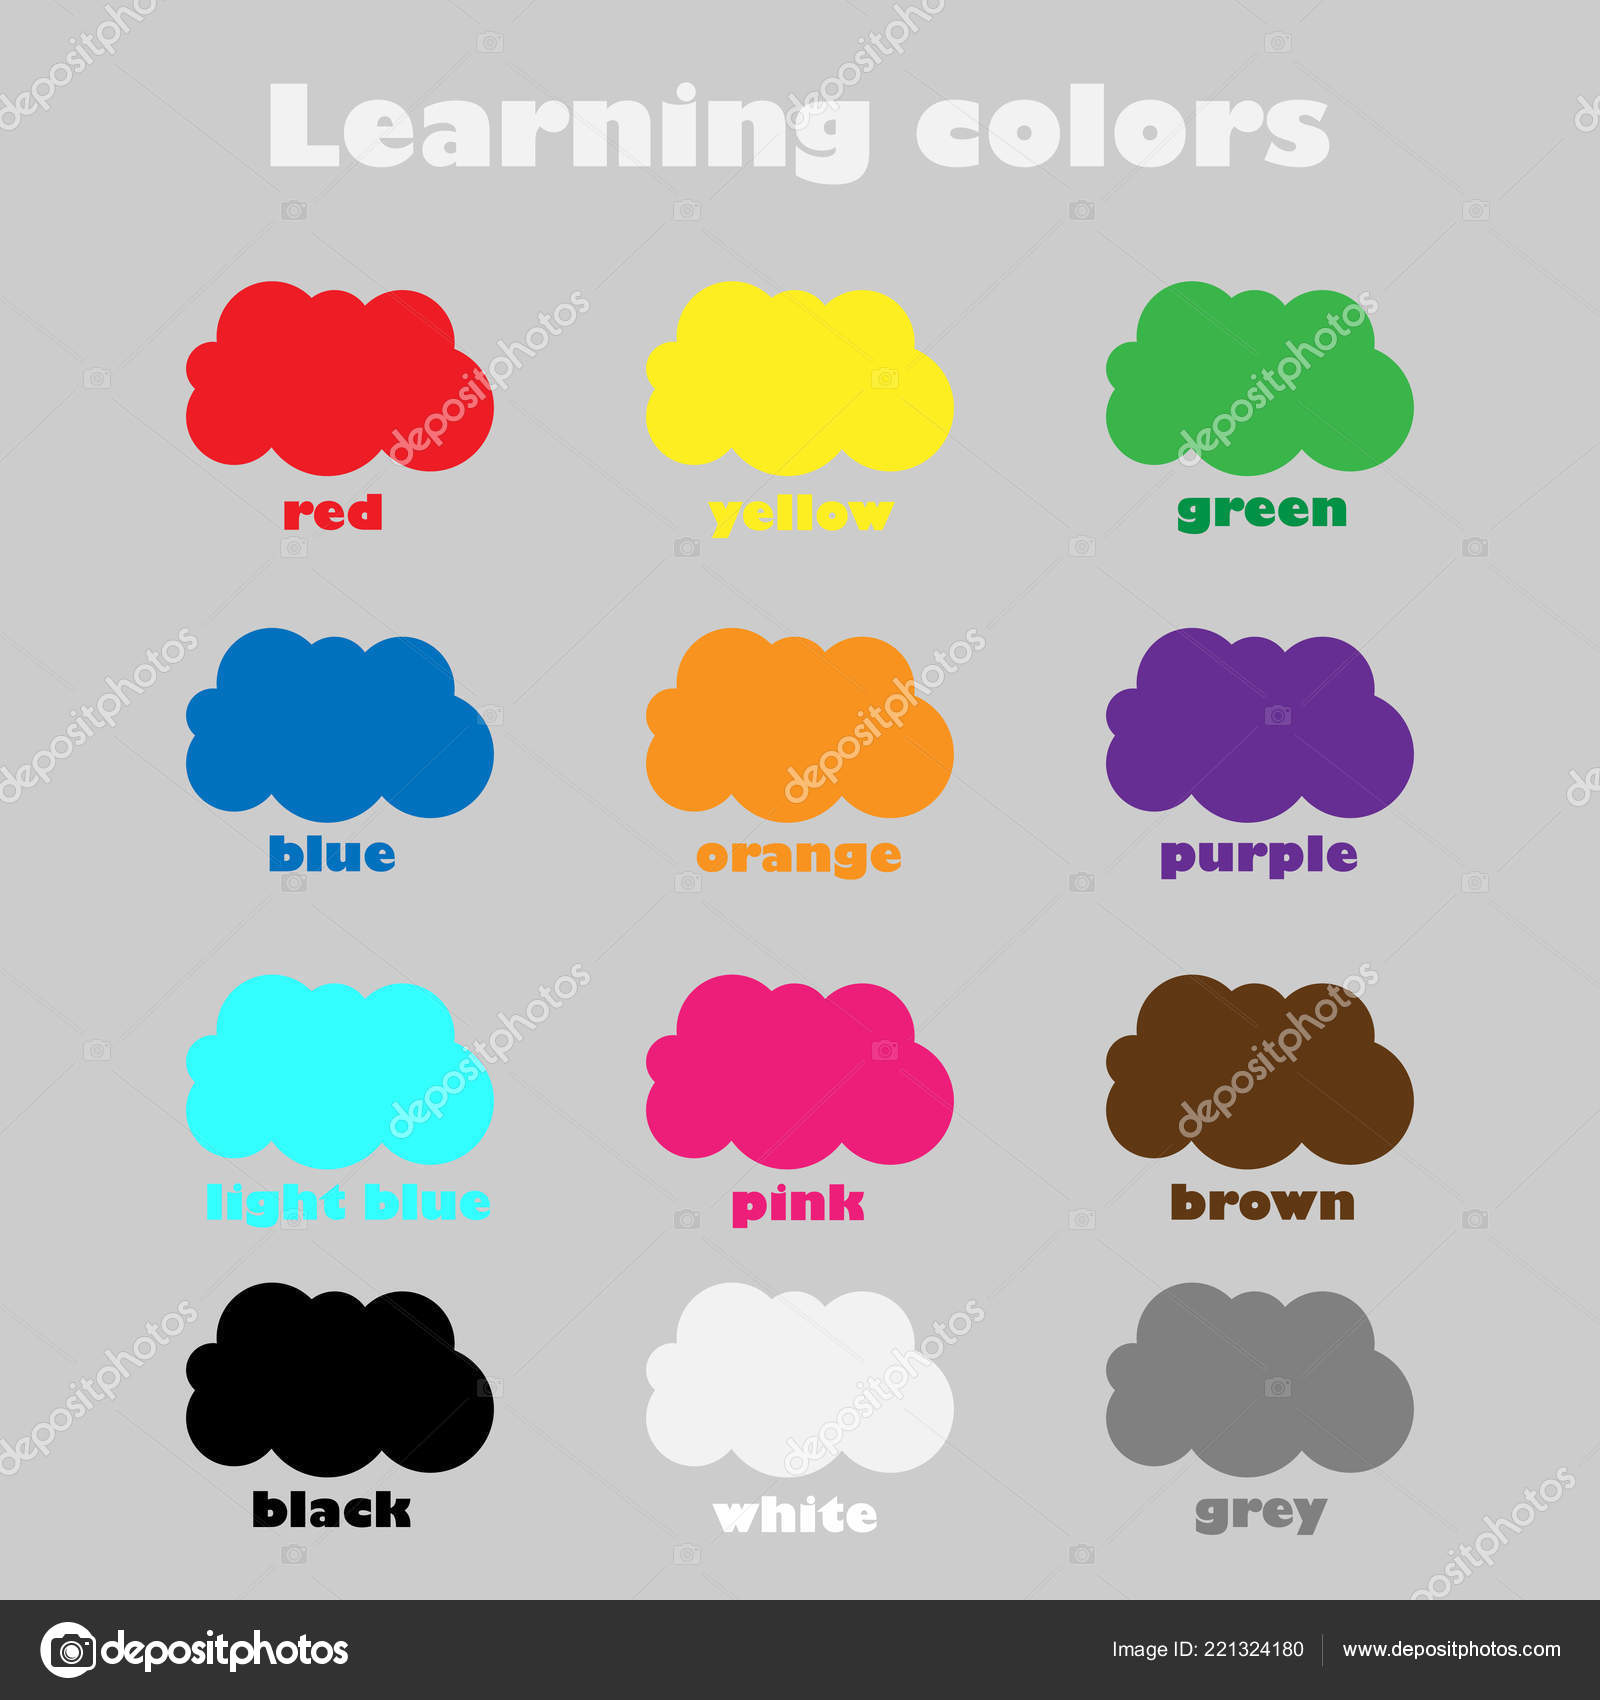 Learning Colors Children Fun Education Game Kids Colorful